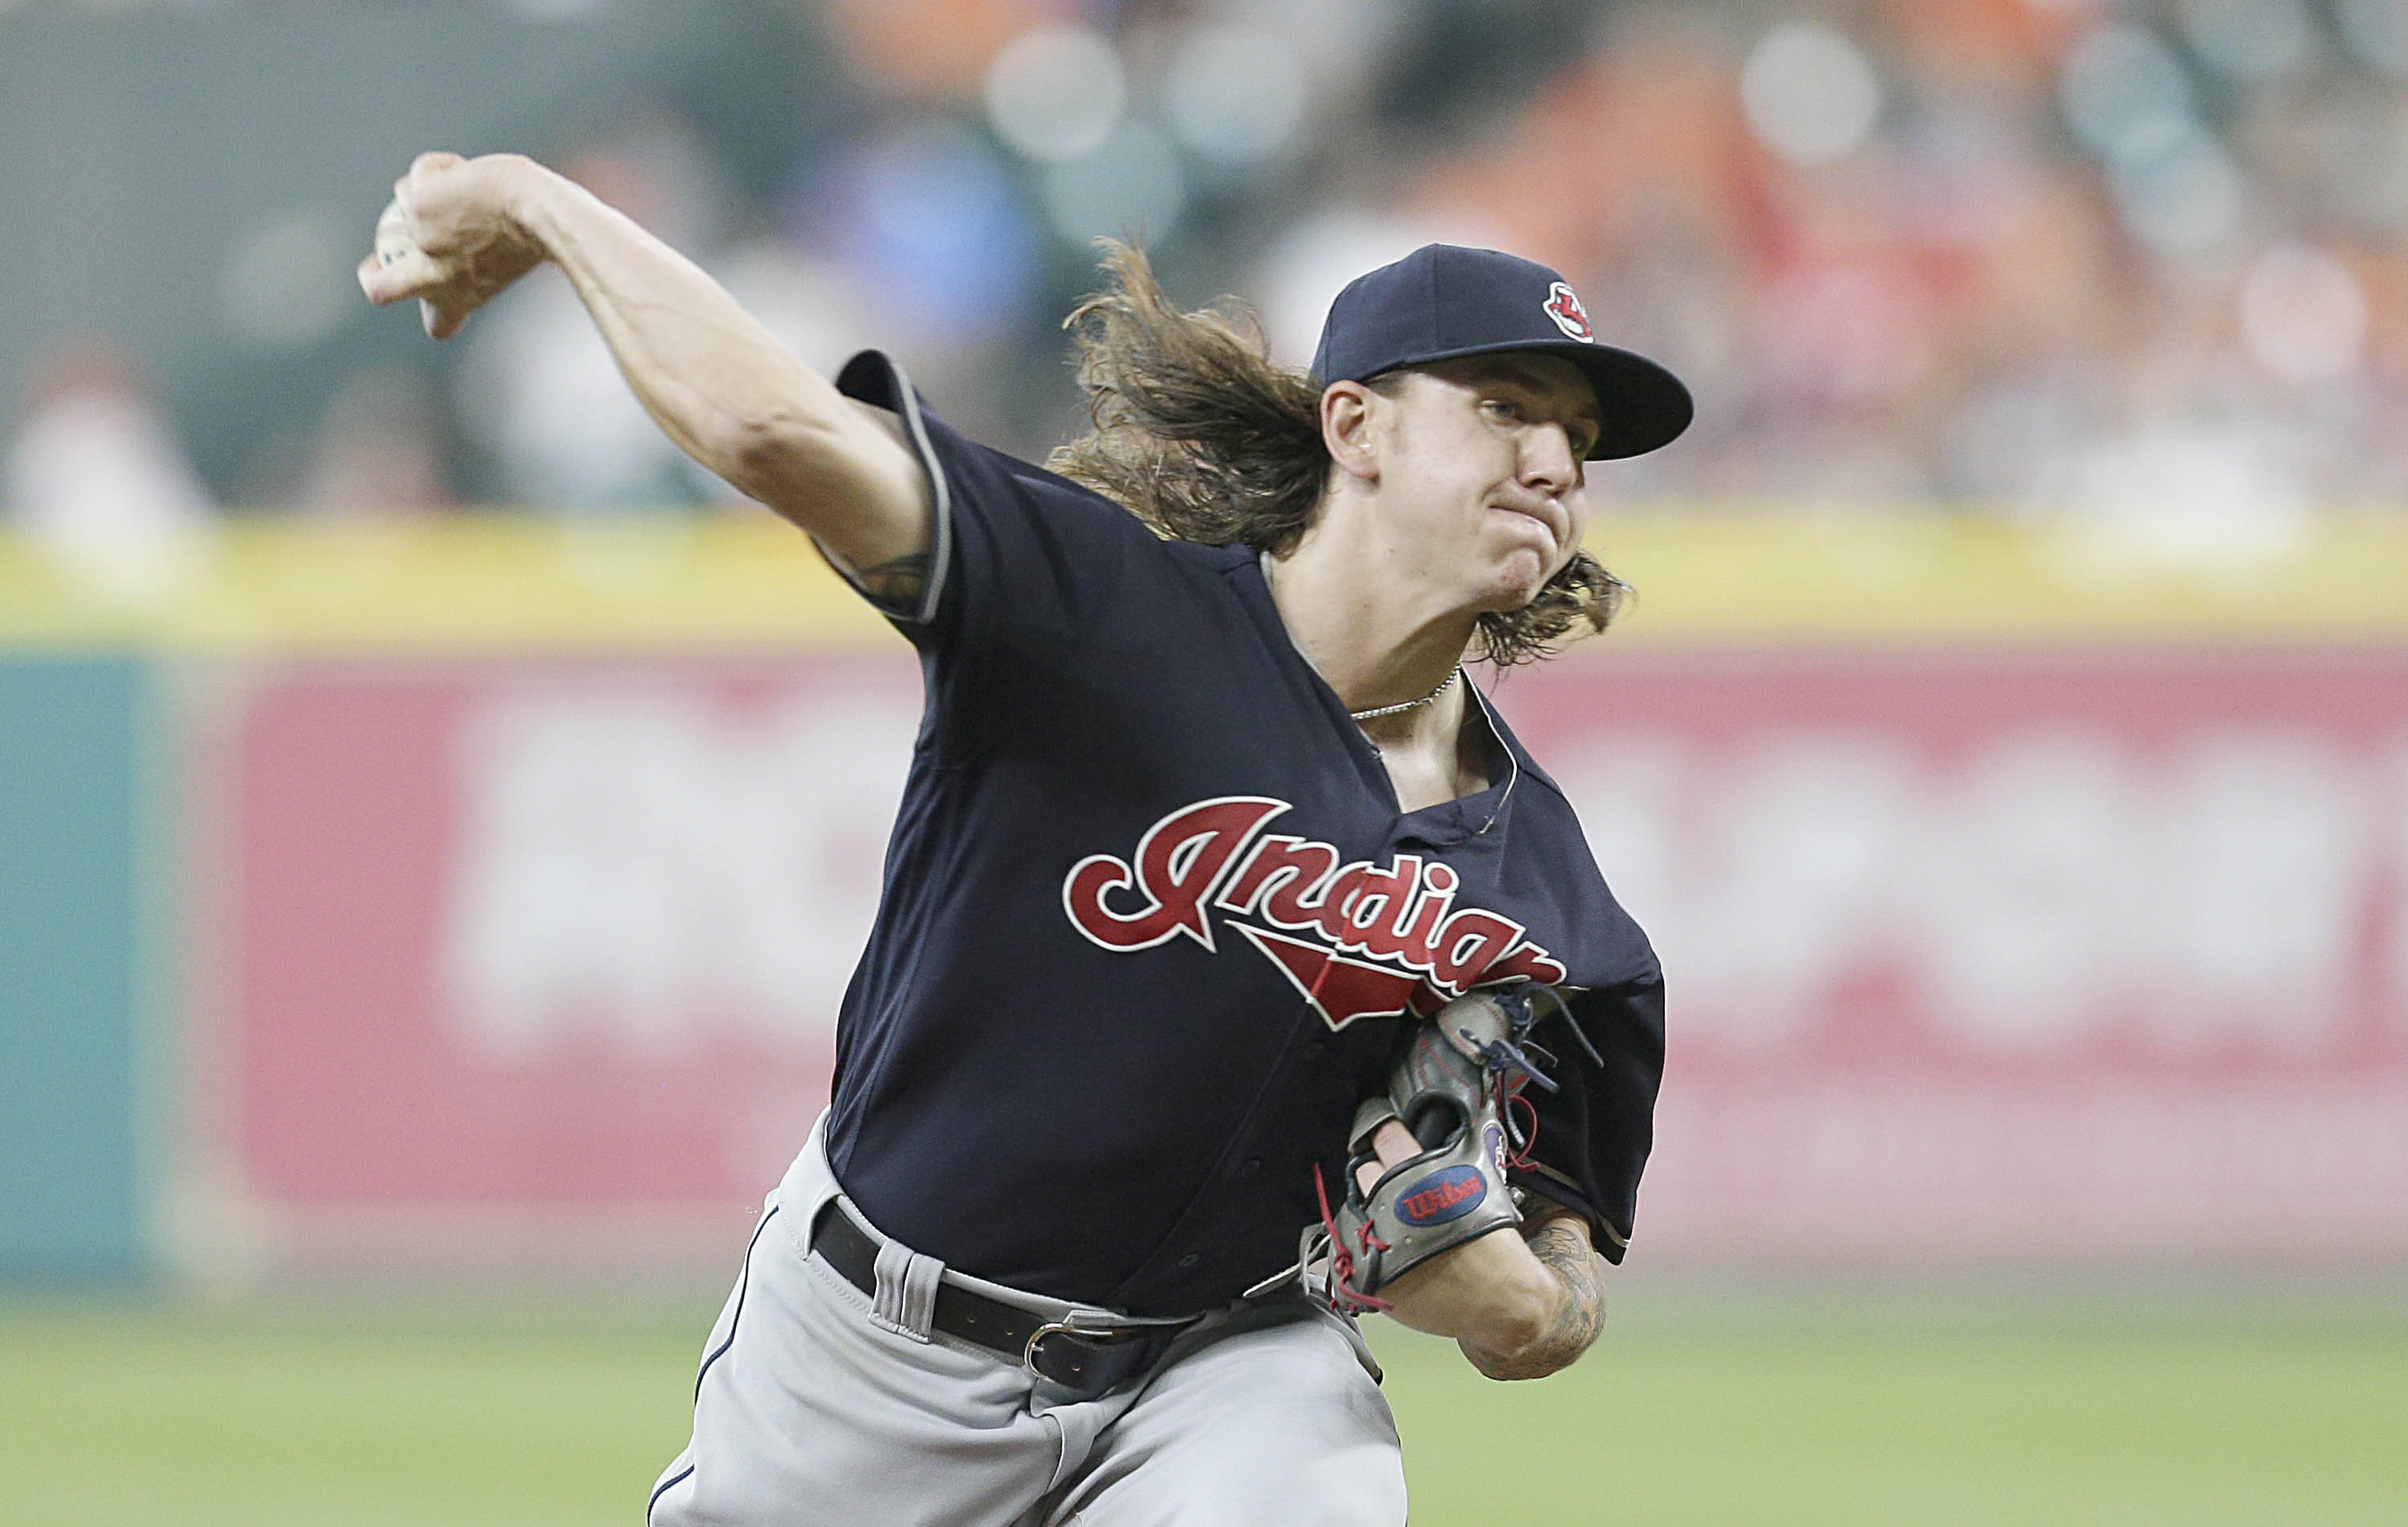 10066527-mlb-cleveland-indians-at-houston-astros